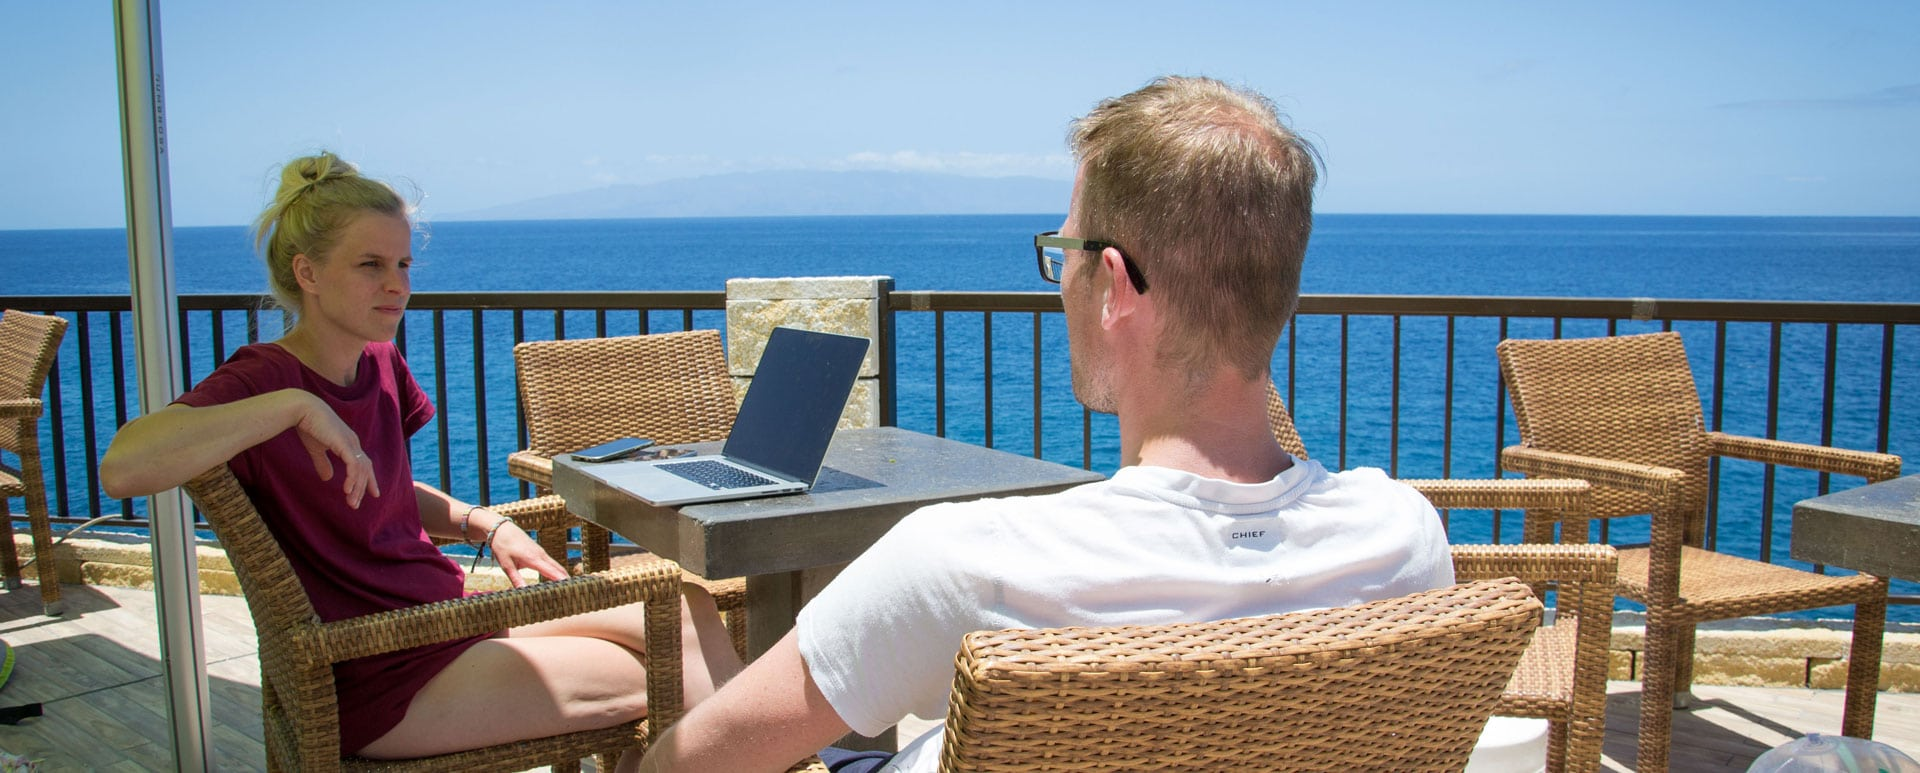 BUSINESS BOOTCAMP TRAINING TENERIFE